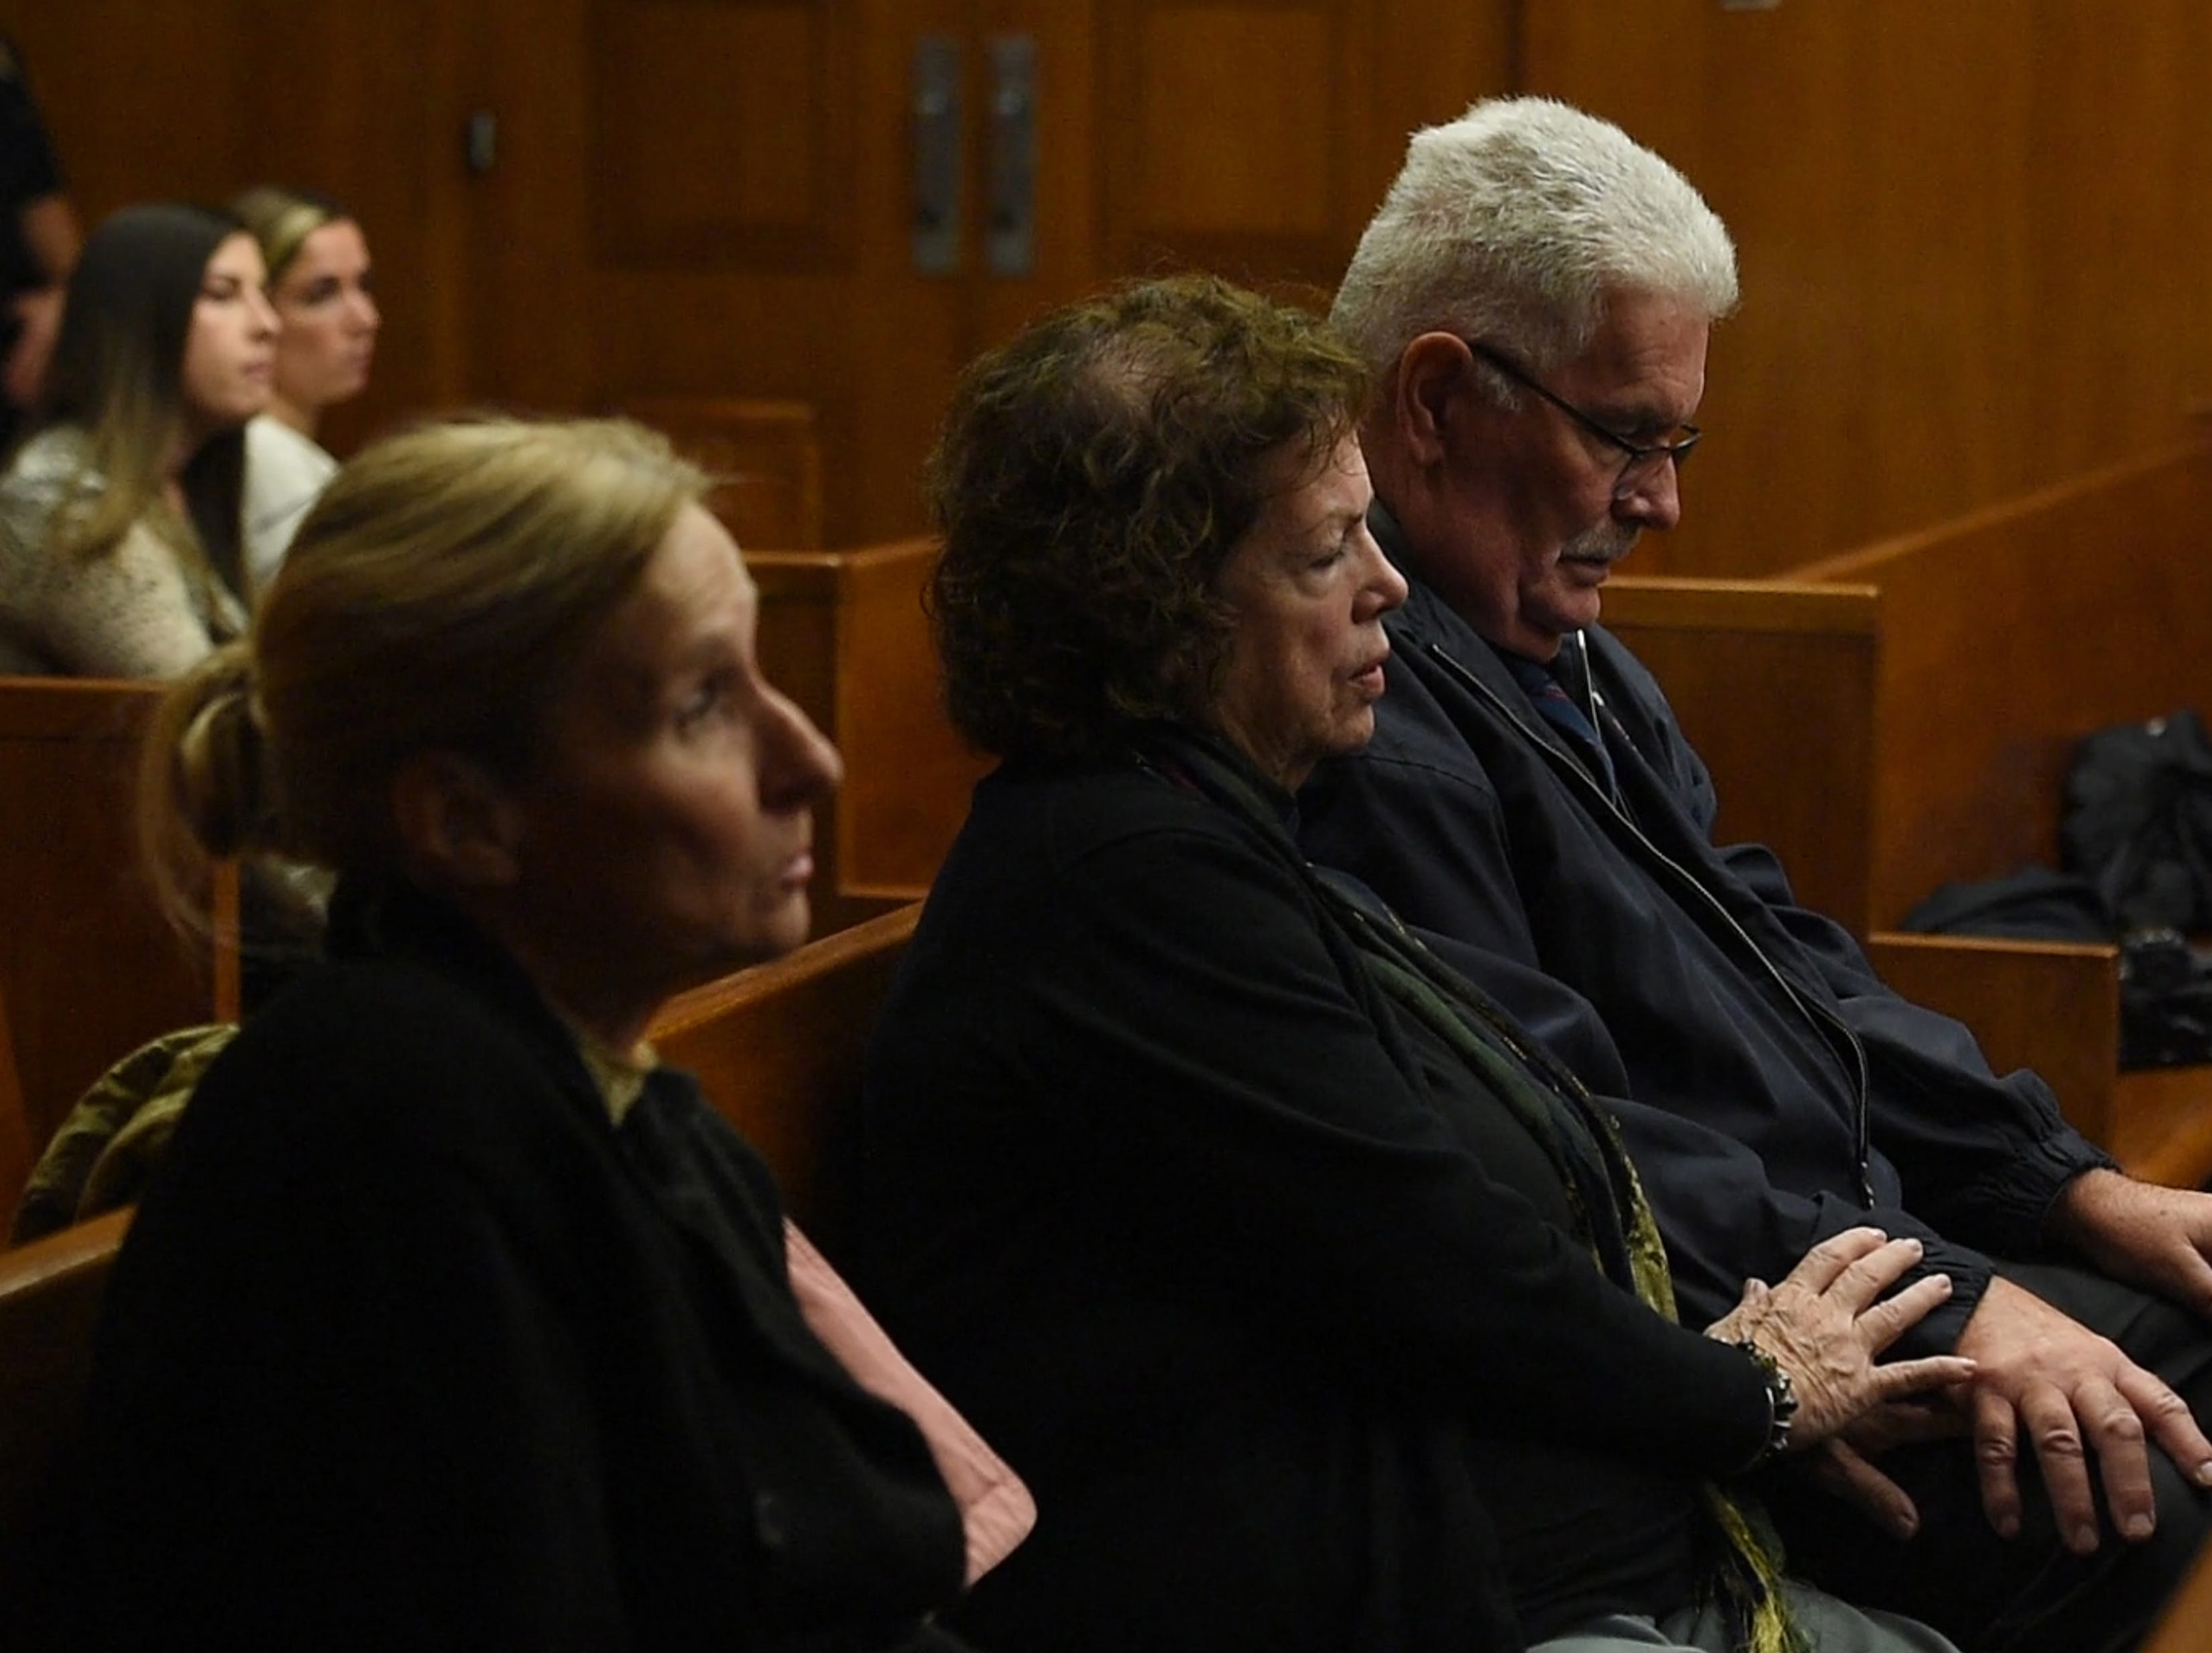 Jared Clackner, of Denville, is on trial in Bergen County Superior Court for killing his friend William Henning after a ZZ Top concert in 2015. Clackner is charged with aggravated manslaughter in the death of Henning. Family and friends of William Henning listen to testimony from former Asst. Bergen County Medical Examiner Dr. Jennifer Swartz on Wednesday, October 17, 2018. Swartz performed the autopsy on Henning in March 2015.